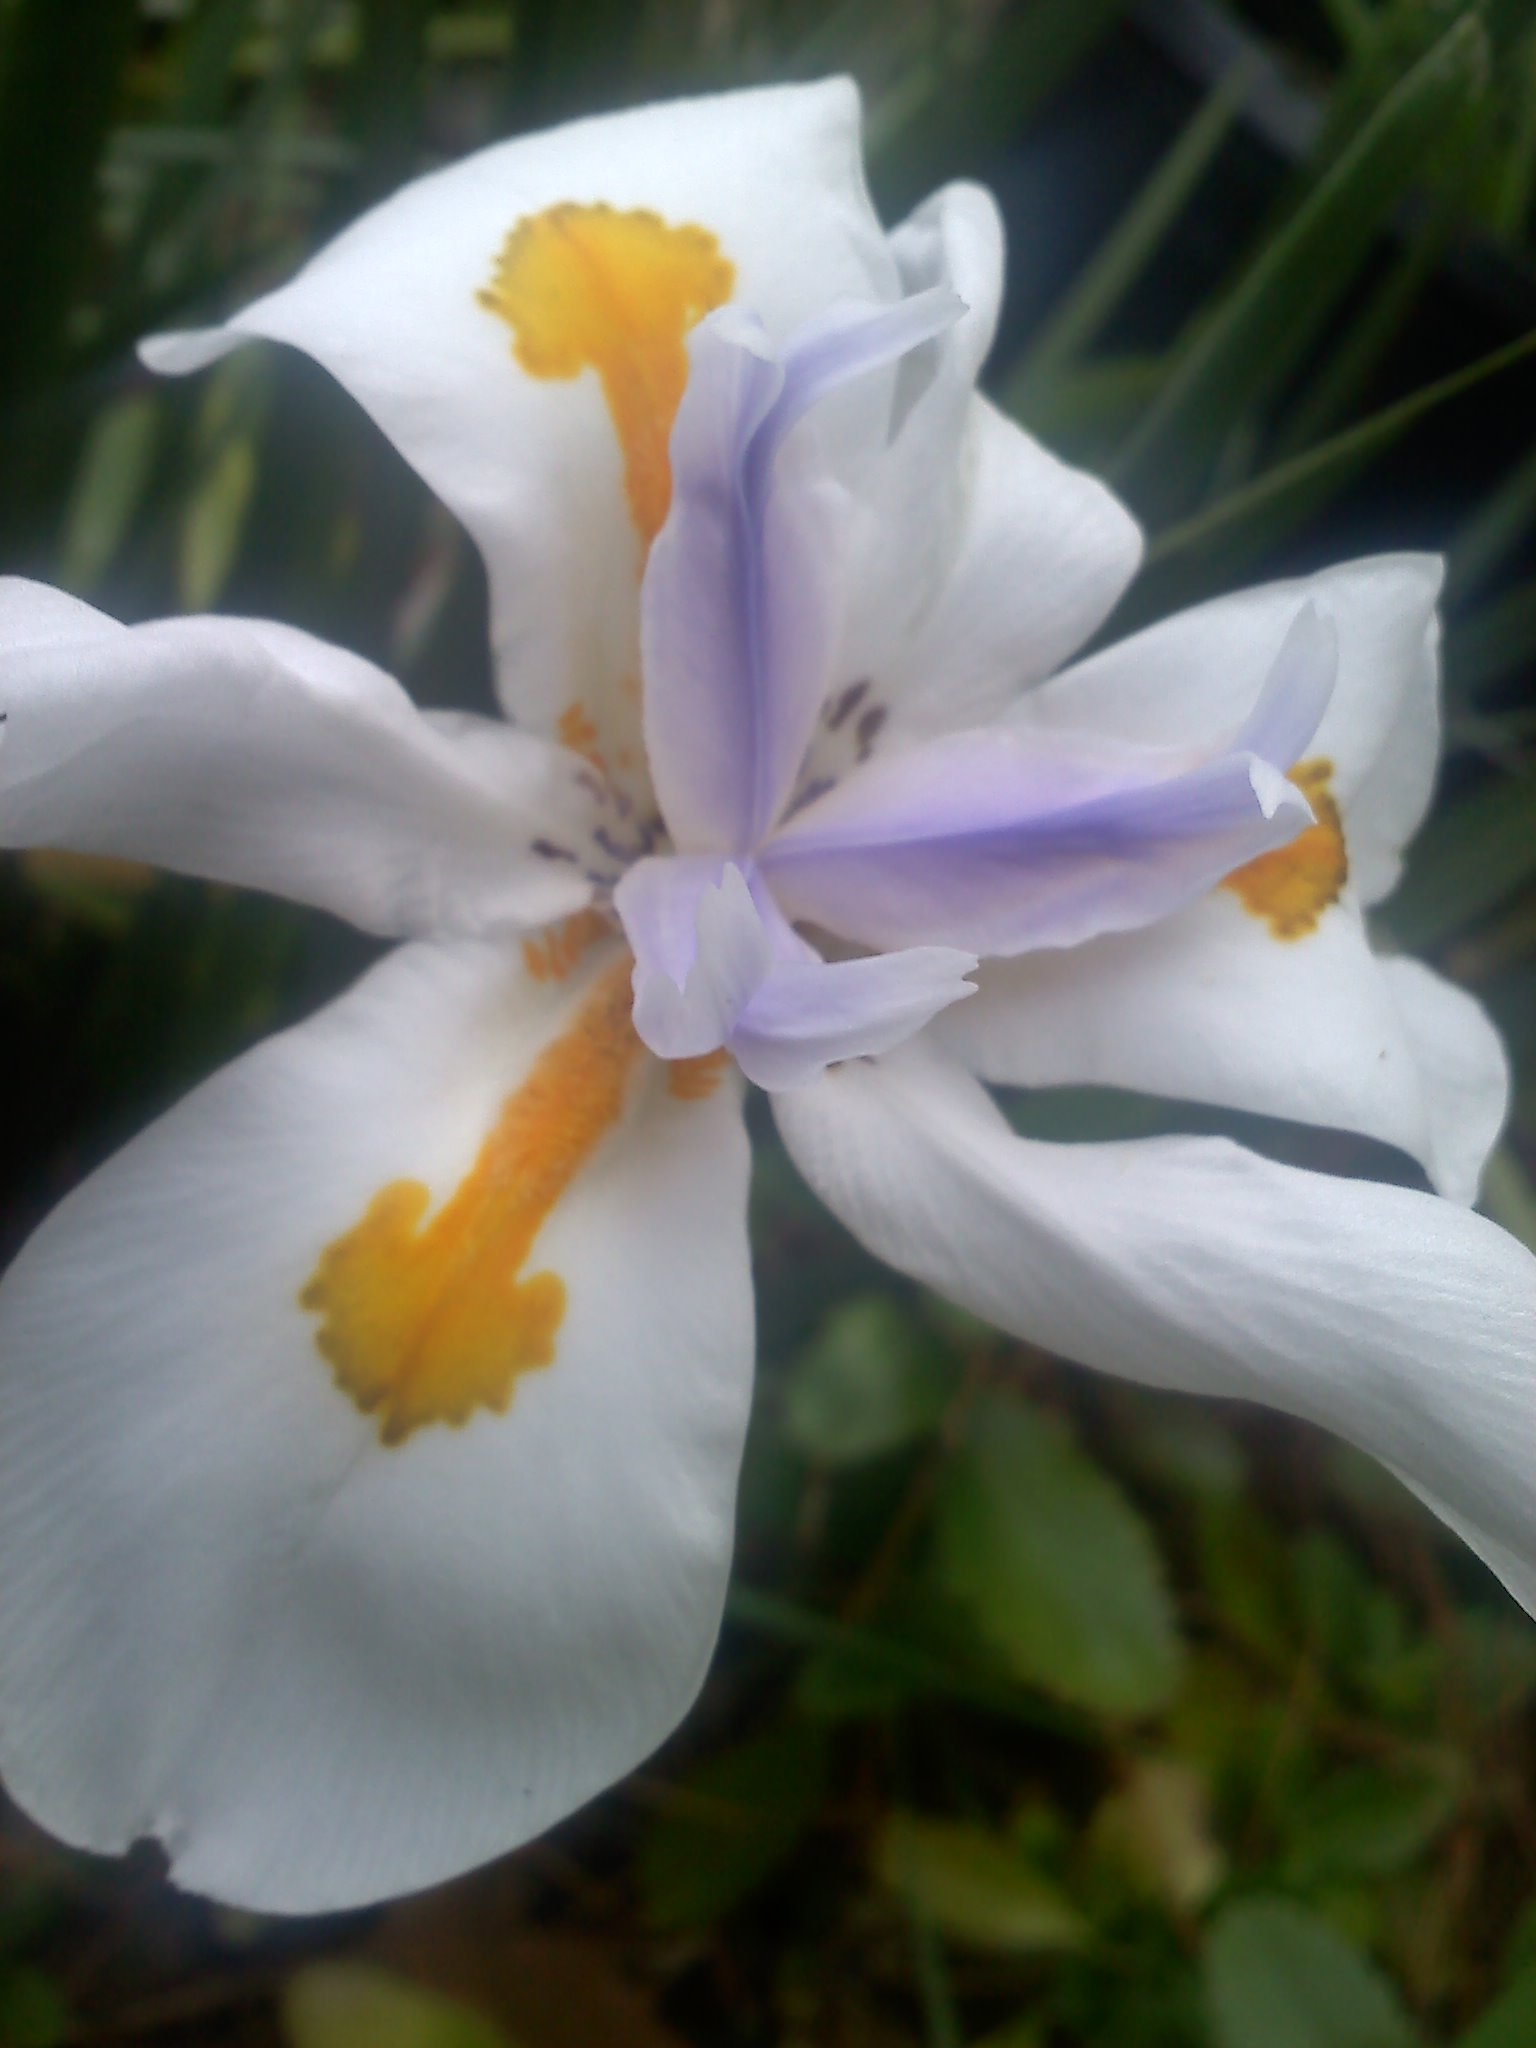 What is this beautiful white flower blooming after 5 years african iris fortnight lily mightylinksfo